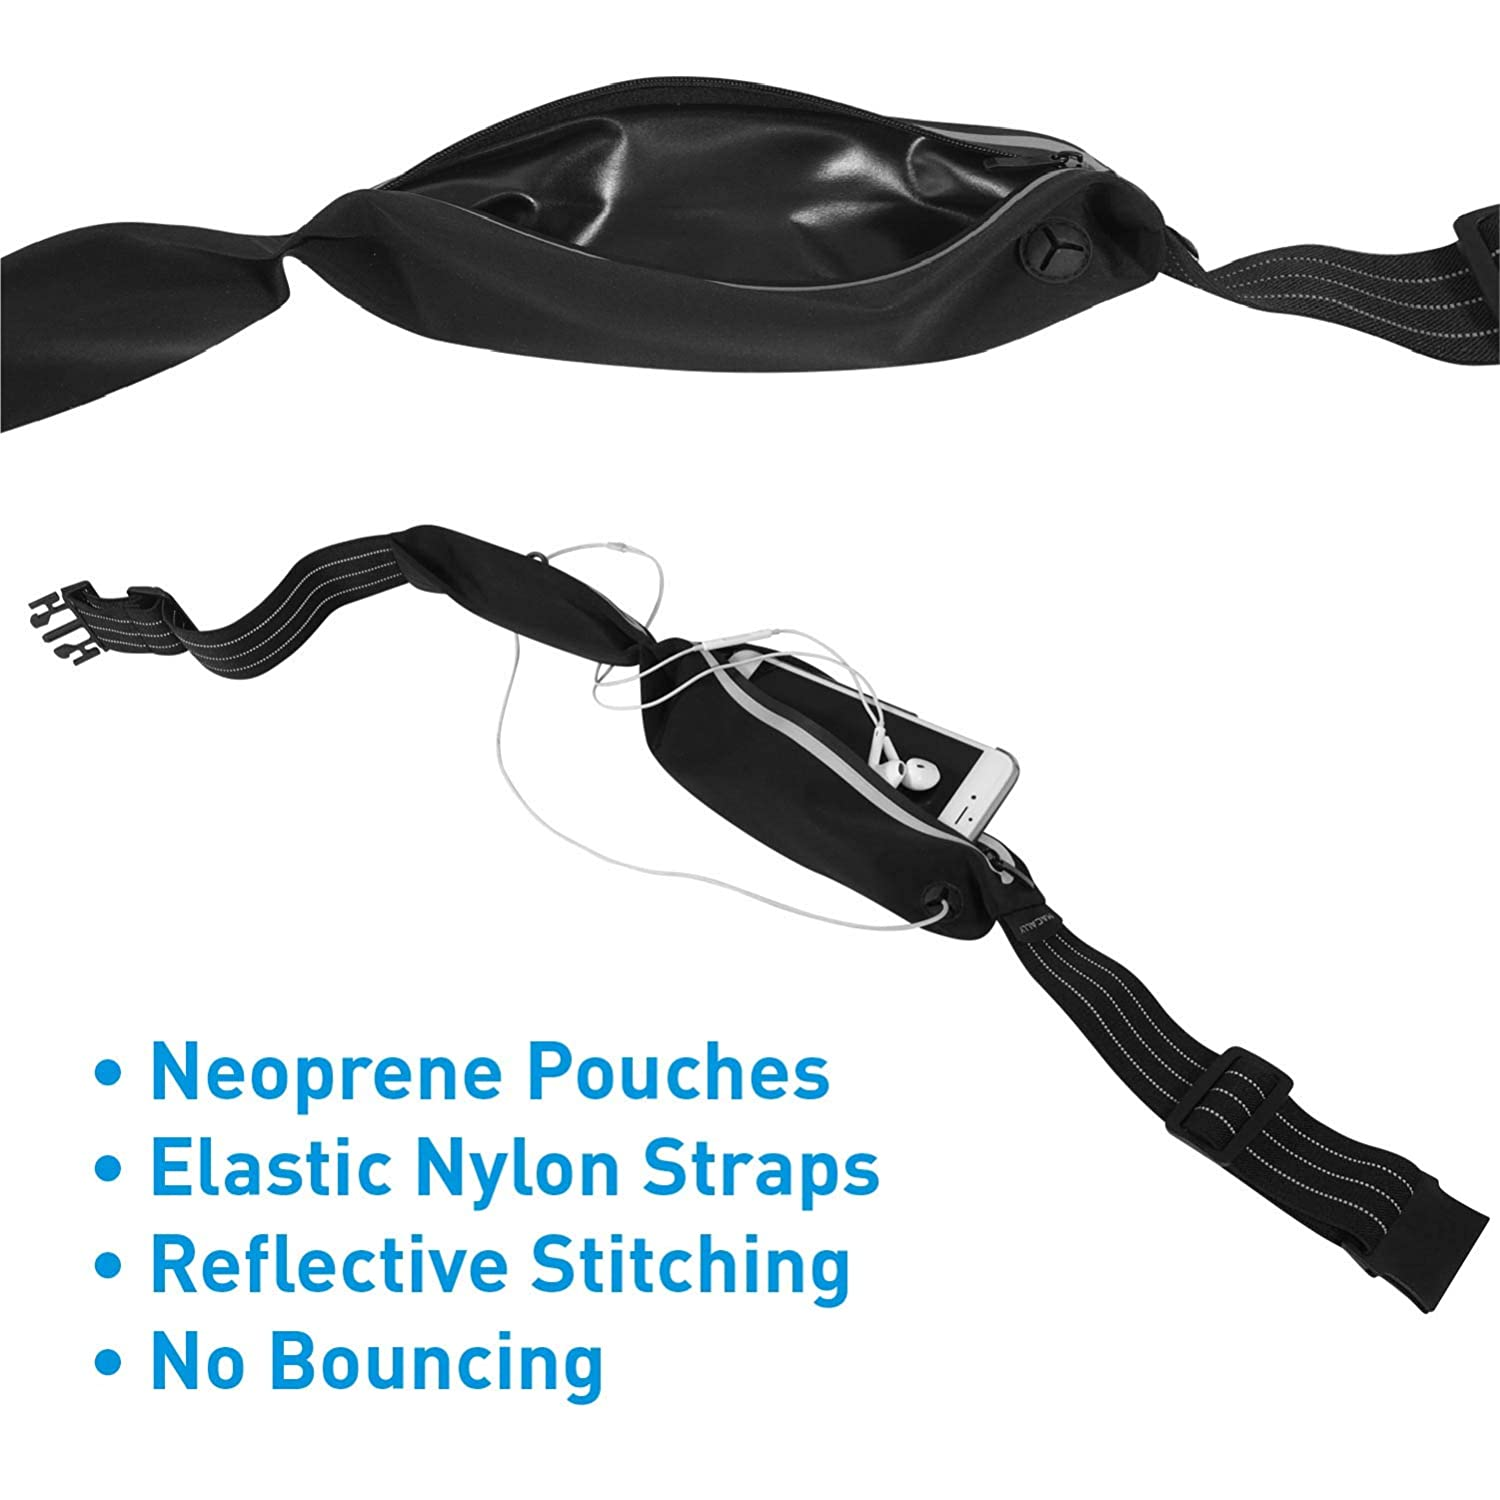 Night Run Macally Running Belt Waist Pack with Slim Low Profile-Compact Design Perfect No Bounce Fanny Pack for Phone Hiking Cycling Reflective Fitness Gear for Men /& Women for Jogging Mace Group Inc // Macally Peripherals RUNBELTSTRIP Black